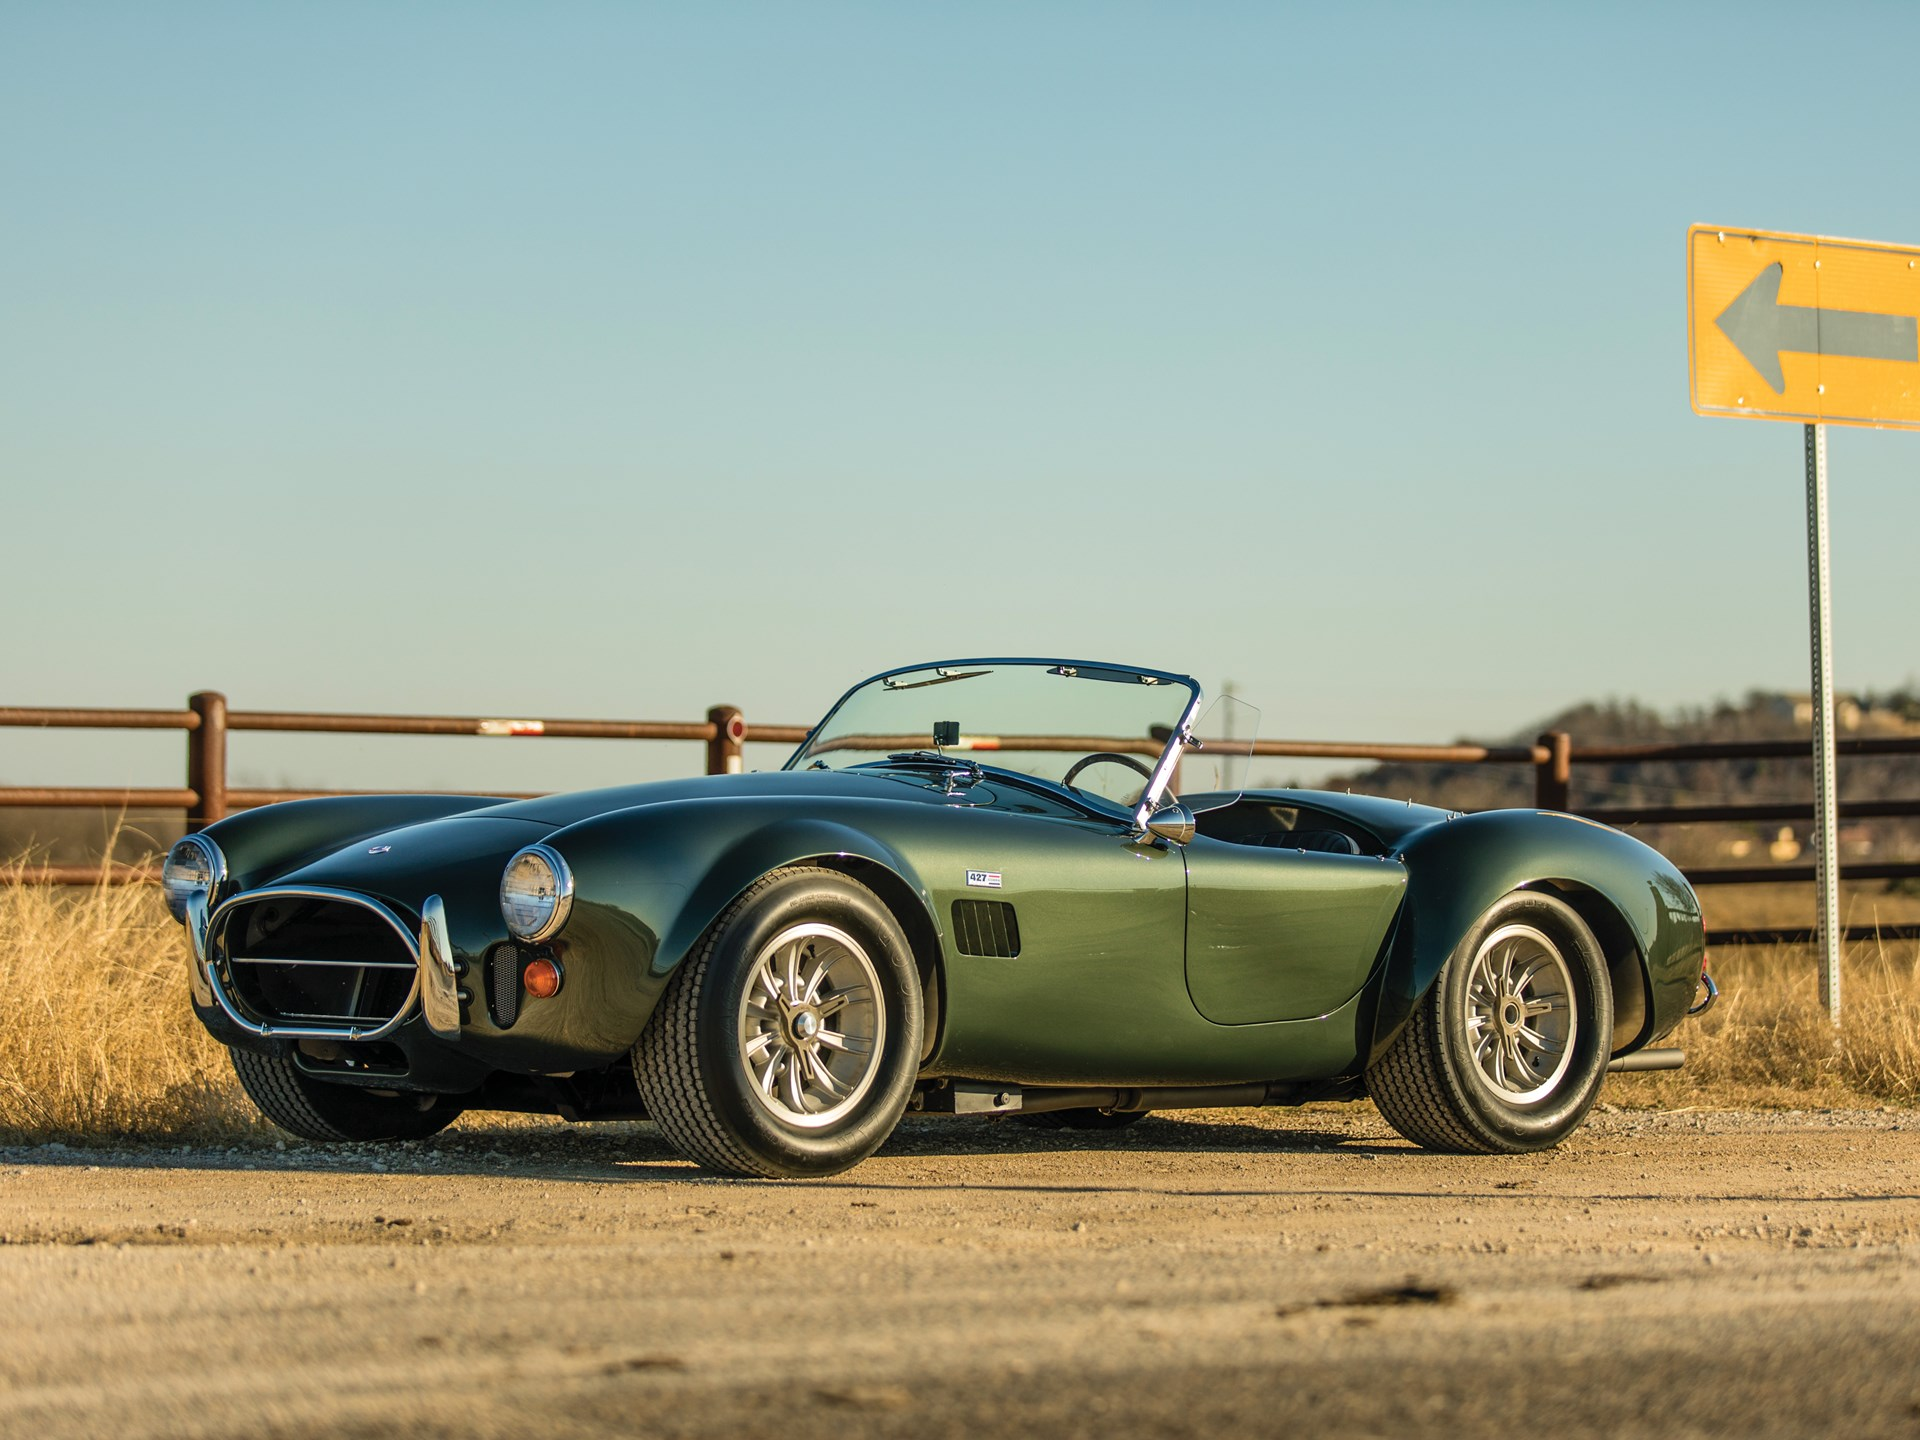 This 427 Shelby Cobra looks absolutely gorgeous in green thumbnail